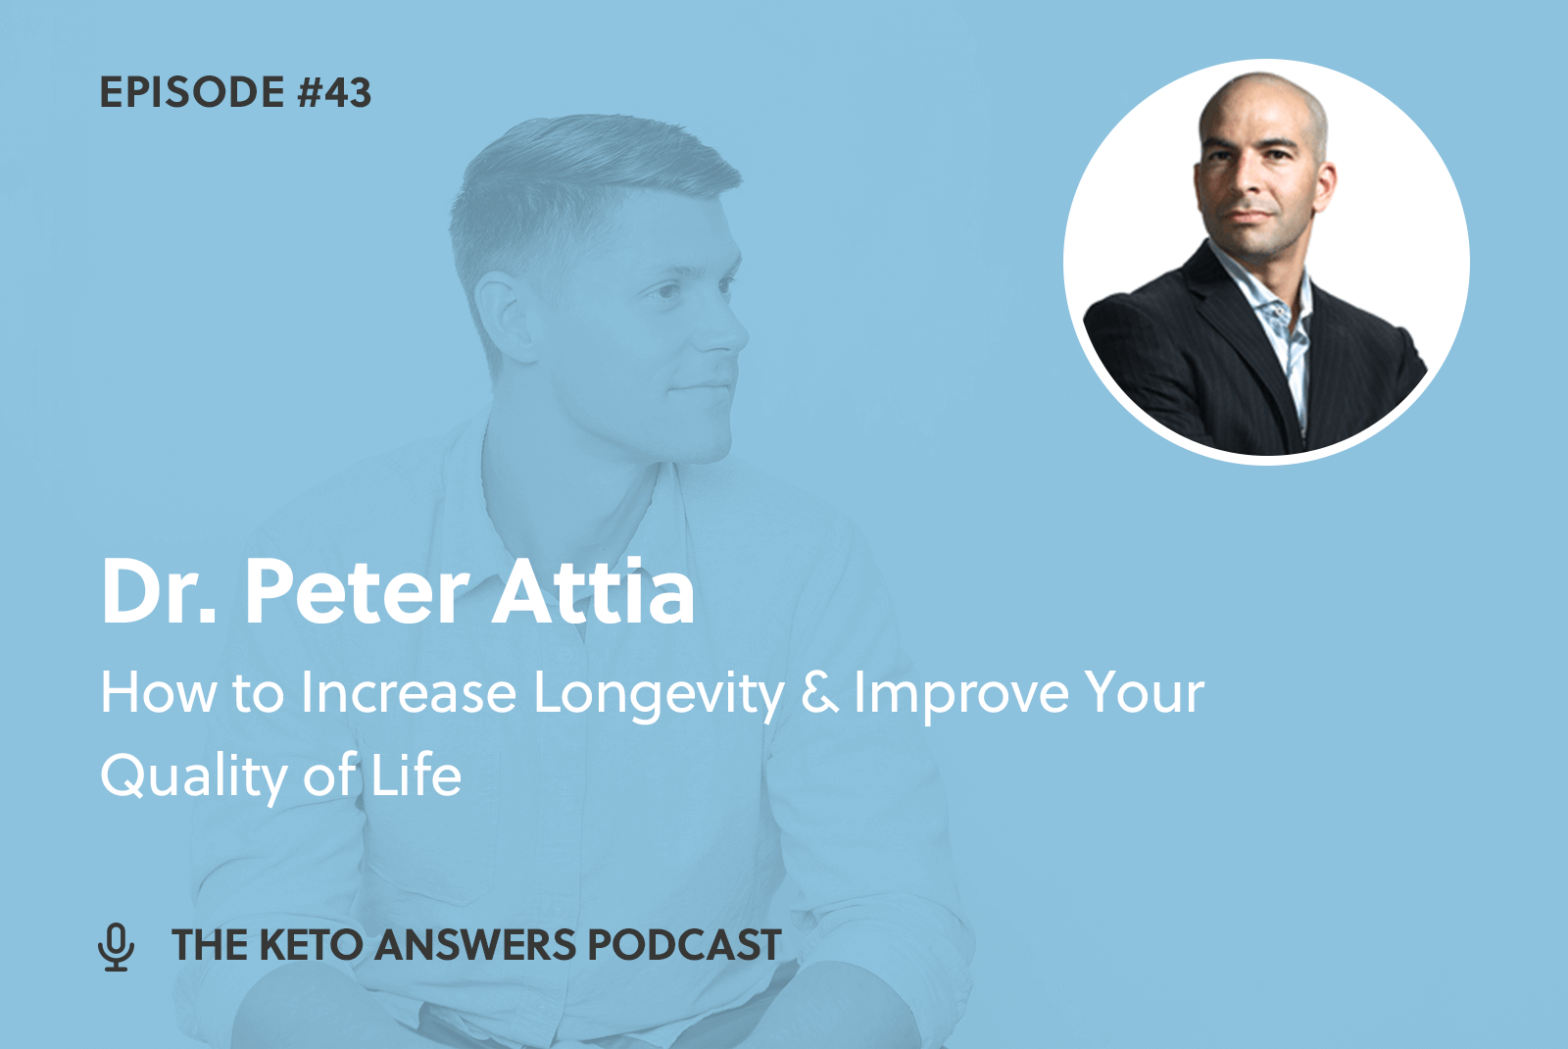 043: Dr. Peter Attia – How to Increase Longevity & Improve Your Quality of Life